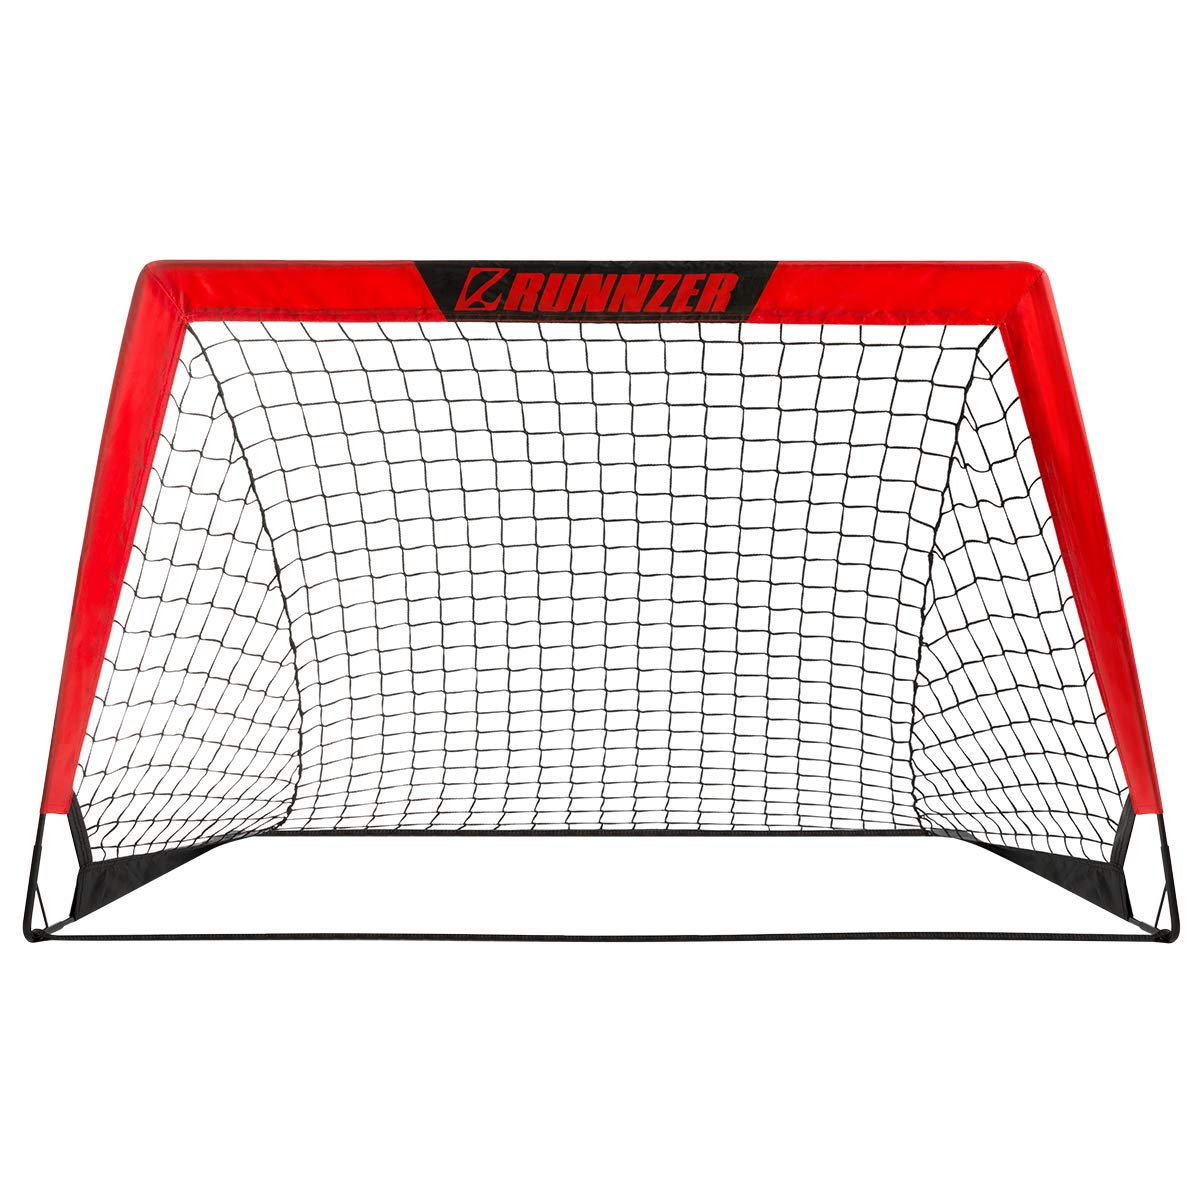 RUNNZER Portable Soccer Goal, Soccer Nets for Backyard Training Goals for Soccer Practice with Carry Case, Set of 1, 3.3'/4.5' x 2.5' by RUNNZER